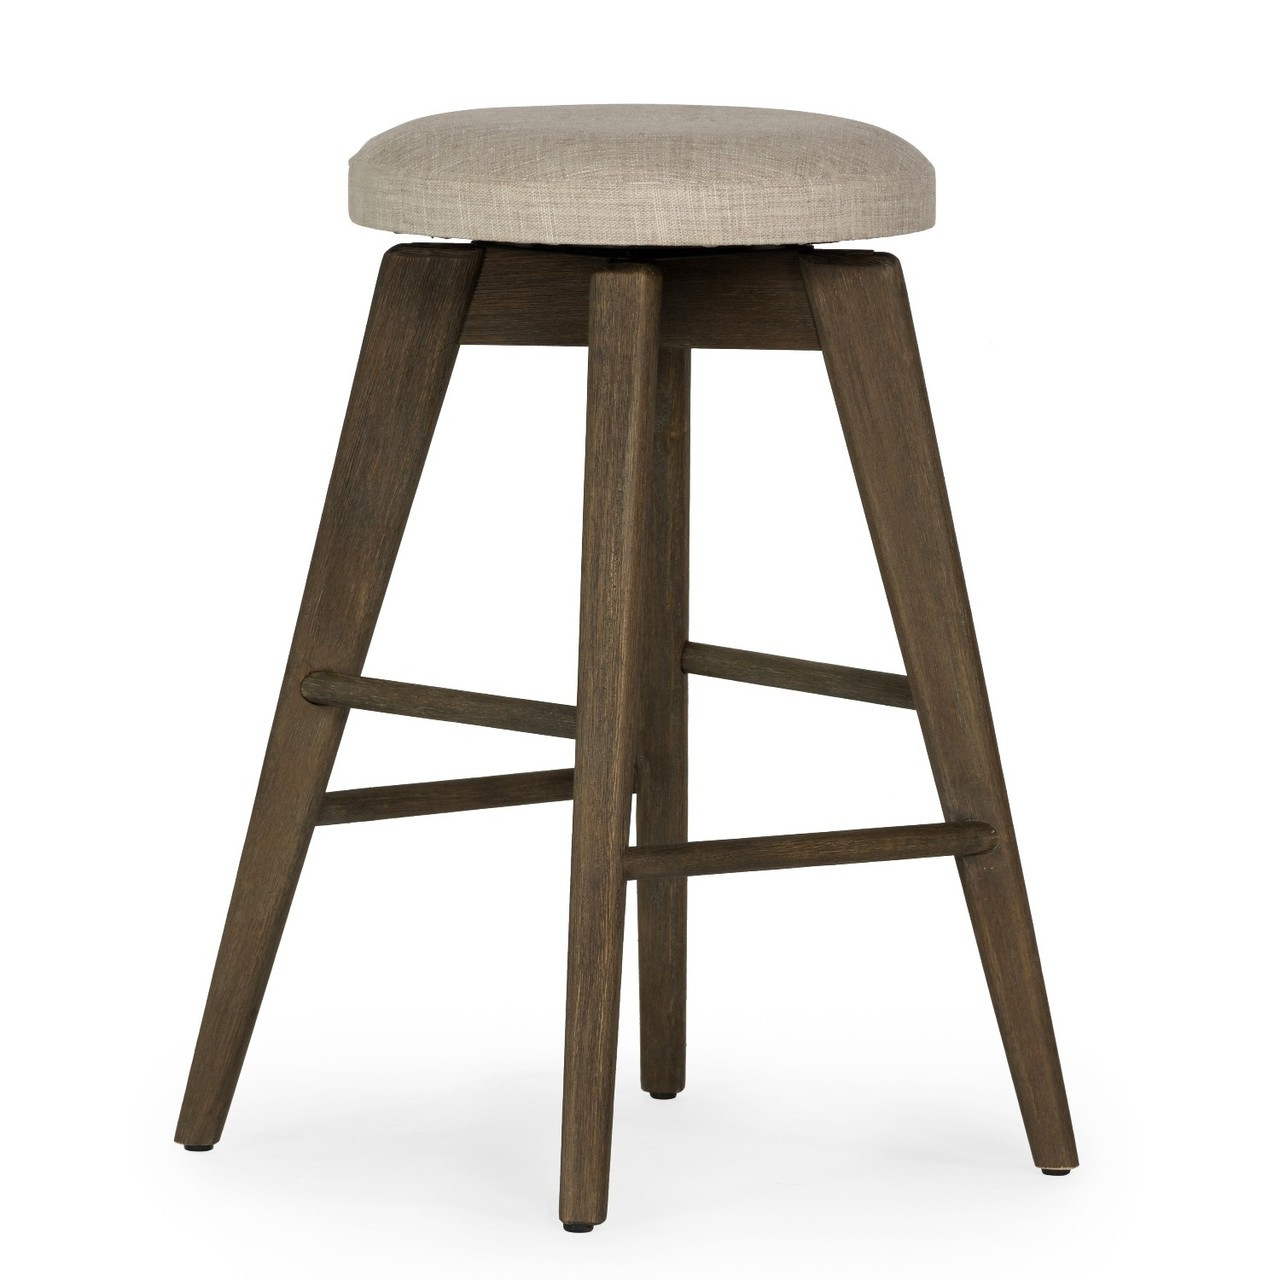 Sensational More Photos Ab687 20Aae Upholstered Swivel Counter Stools Unemploymentrelief Wooden Chair Designs For Living Room Unemploymentrelieforg